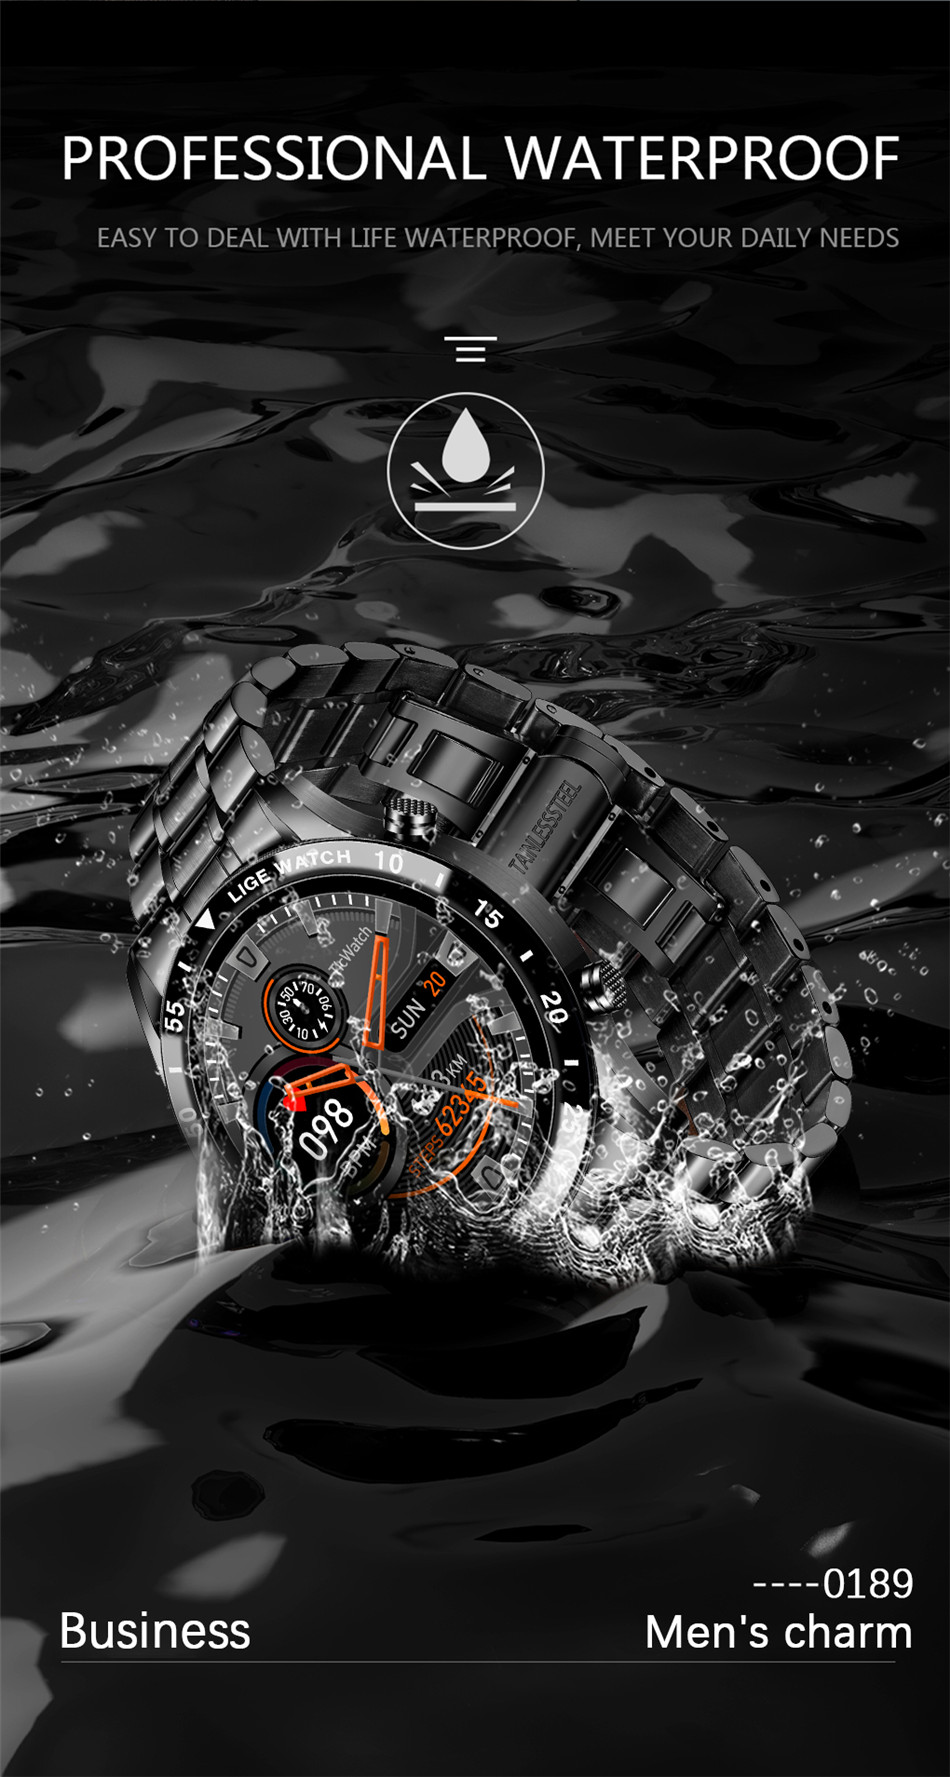 H7b8765c4f06c4f3daa1b3f473c369ab7U LIGE 2020 New Smart Watch Men Full Touch Screen Sports Fitness Watch IP67 Waterproof Bluetooth For Android ios smartwatch Mens